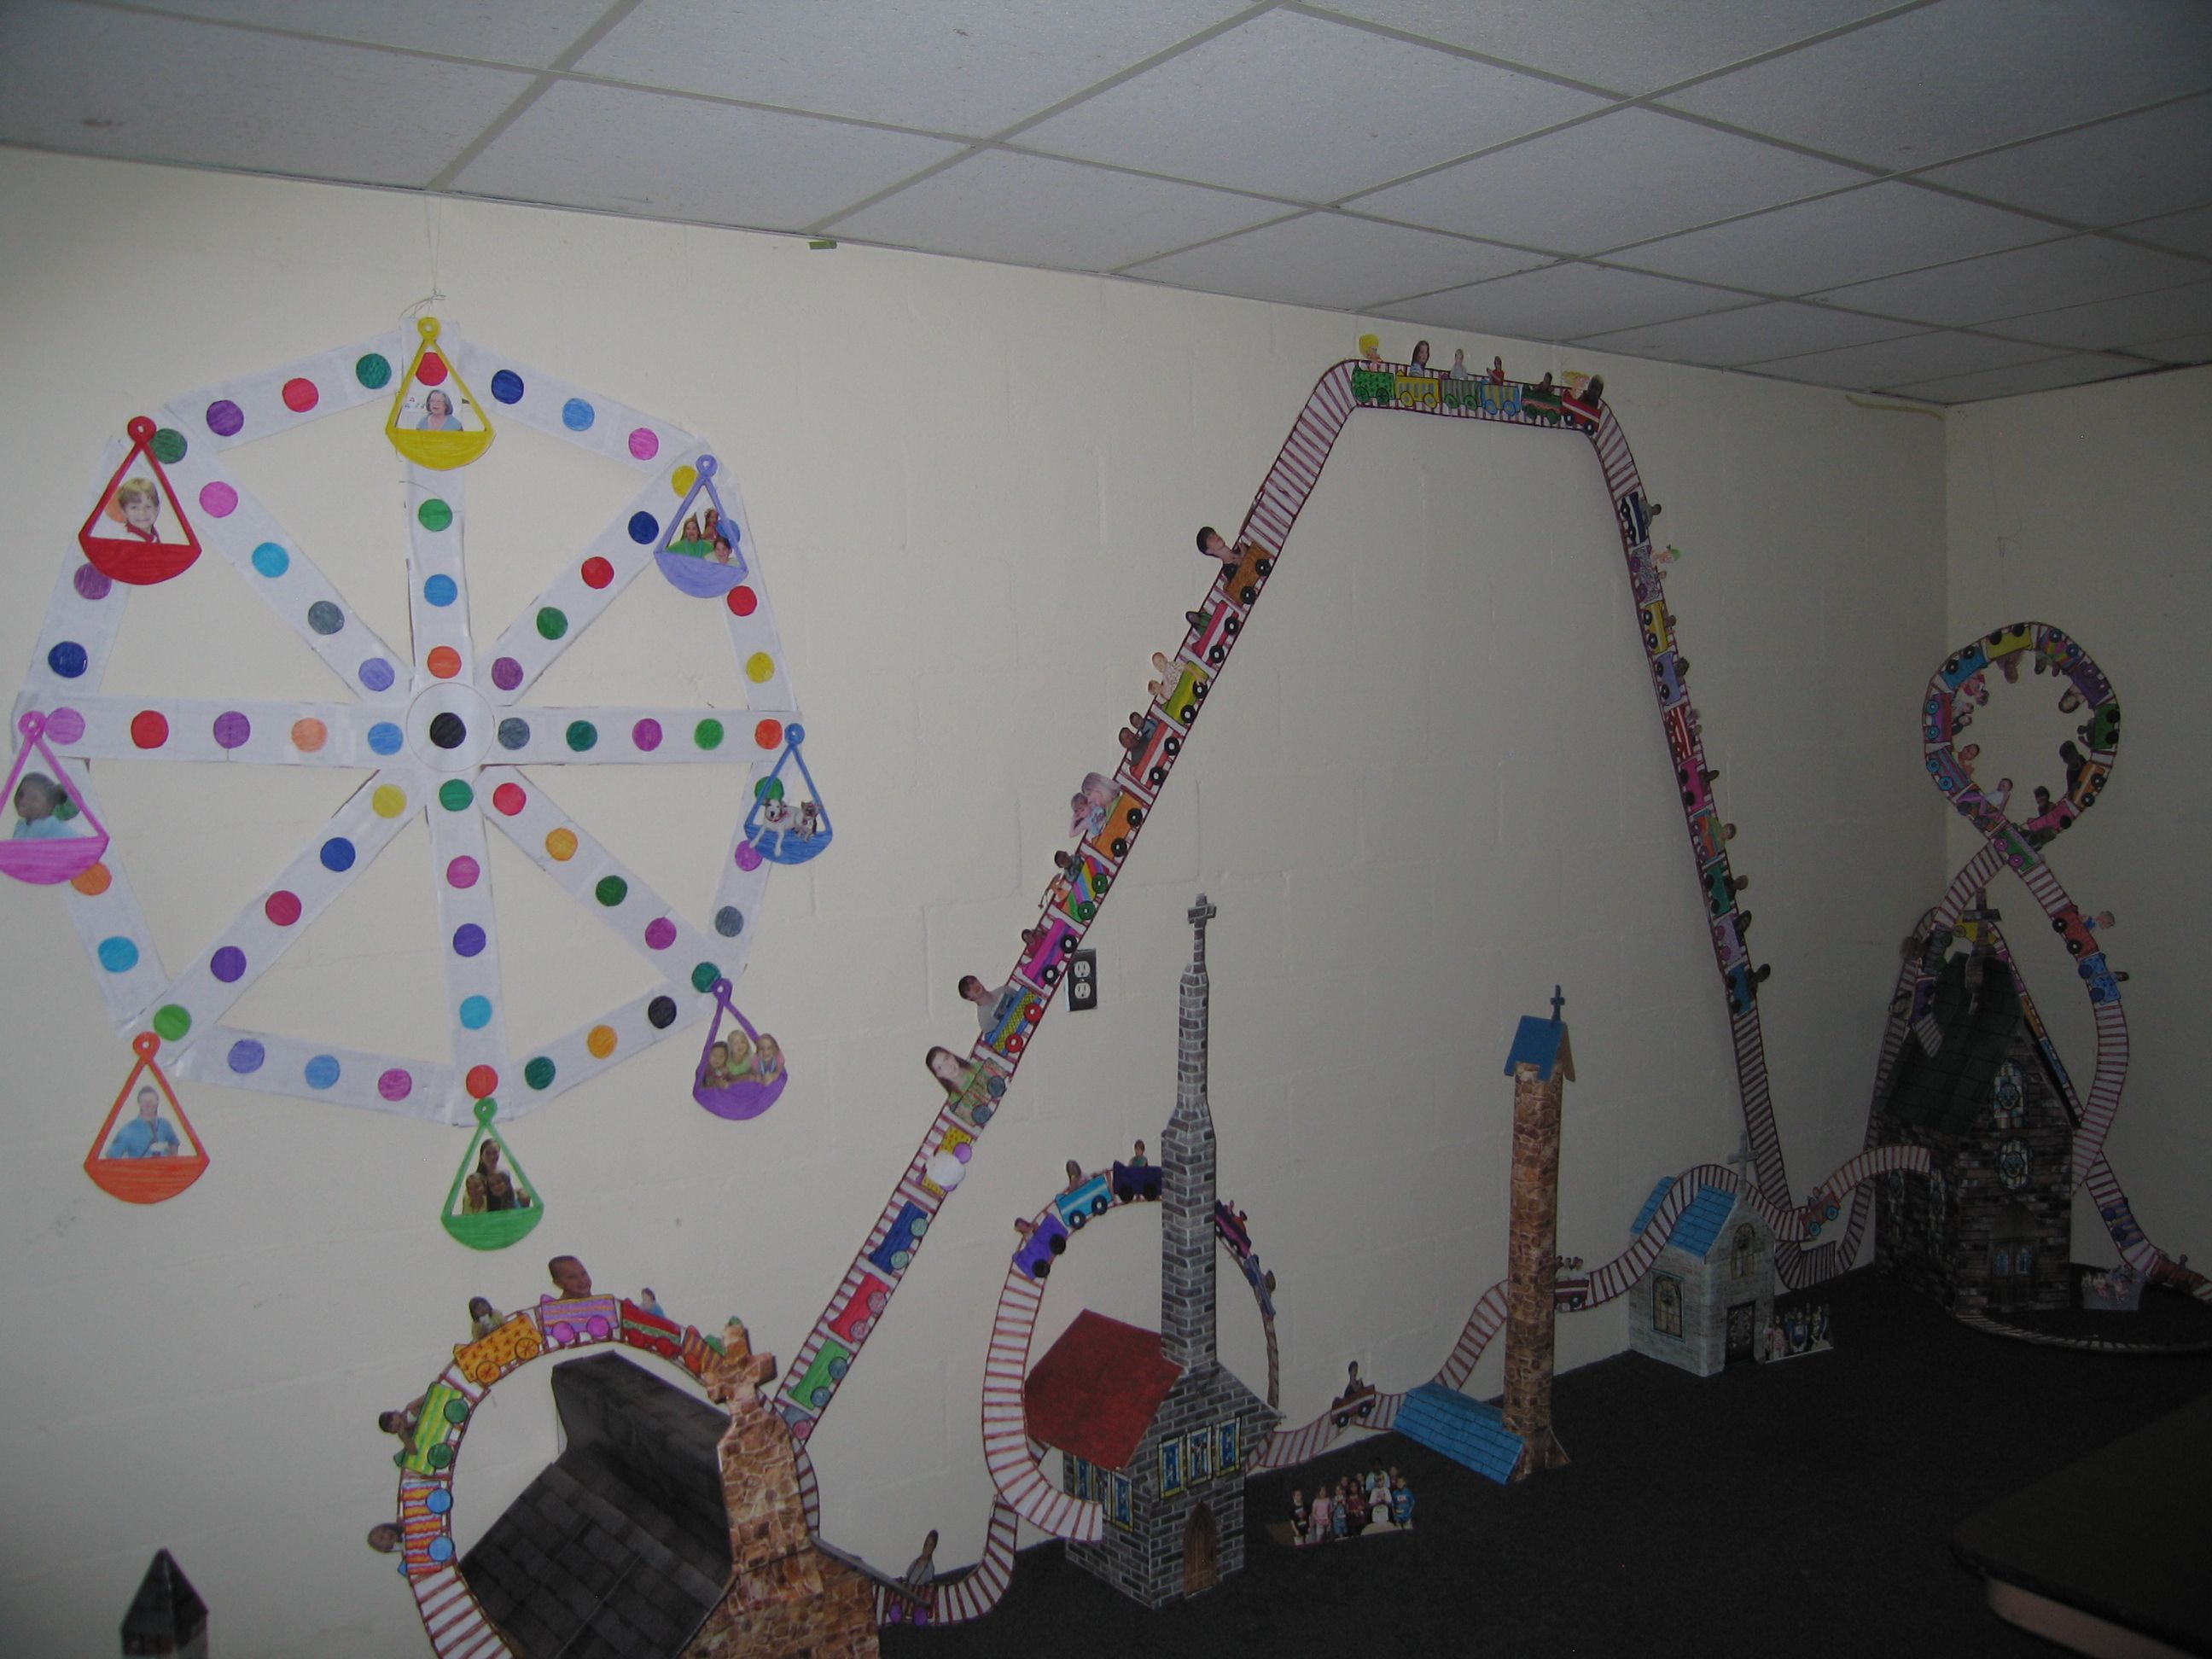 Kids Craft Room Ideas: Refuge VBS Craft Room With Actual Pictures Of Kids From